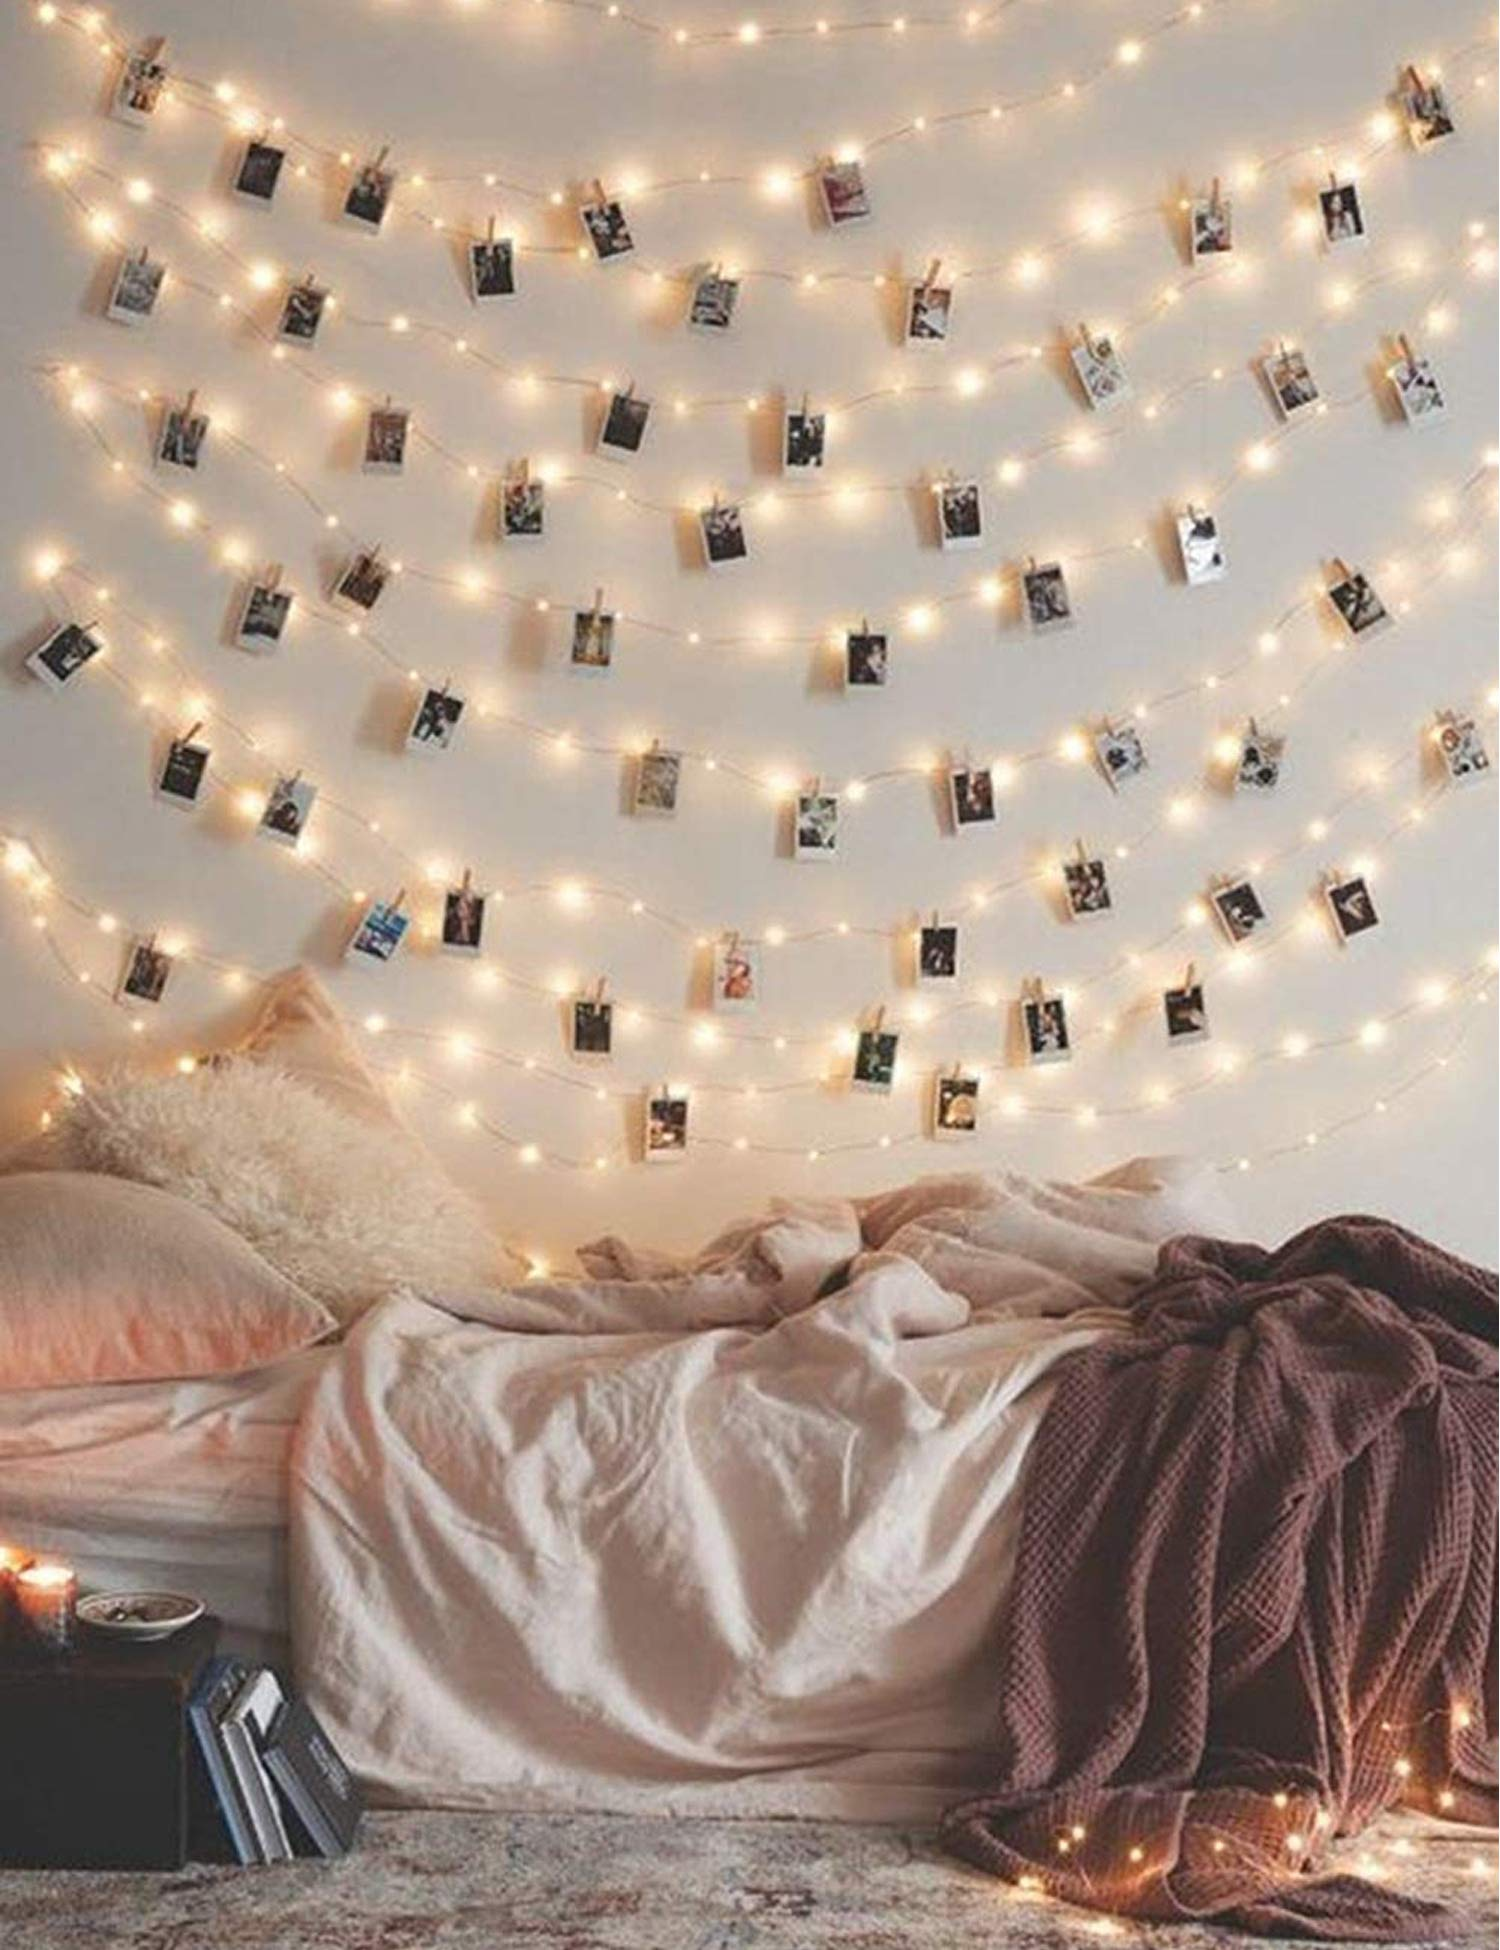 Photo Clip String Lights 33Ft - 100 LED Fairy String Lights with 50 Clear Clips for Hanging Pictures, Photo String Lights with Clips USB Powered with Switch - Perfect Bedroom Decor Wedding Decorations